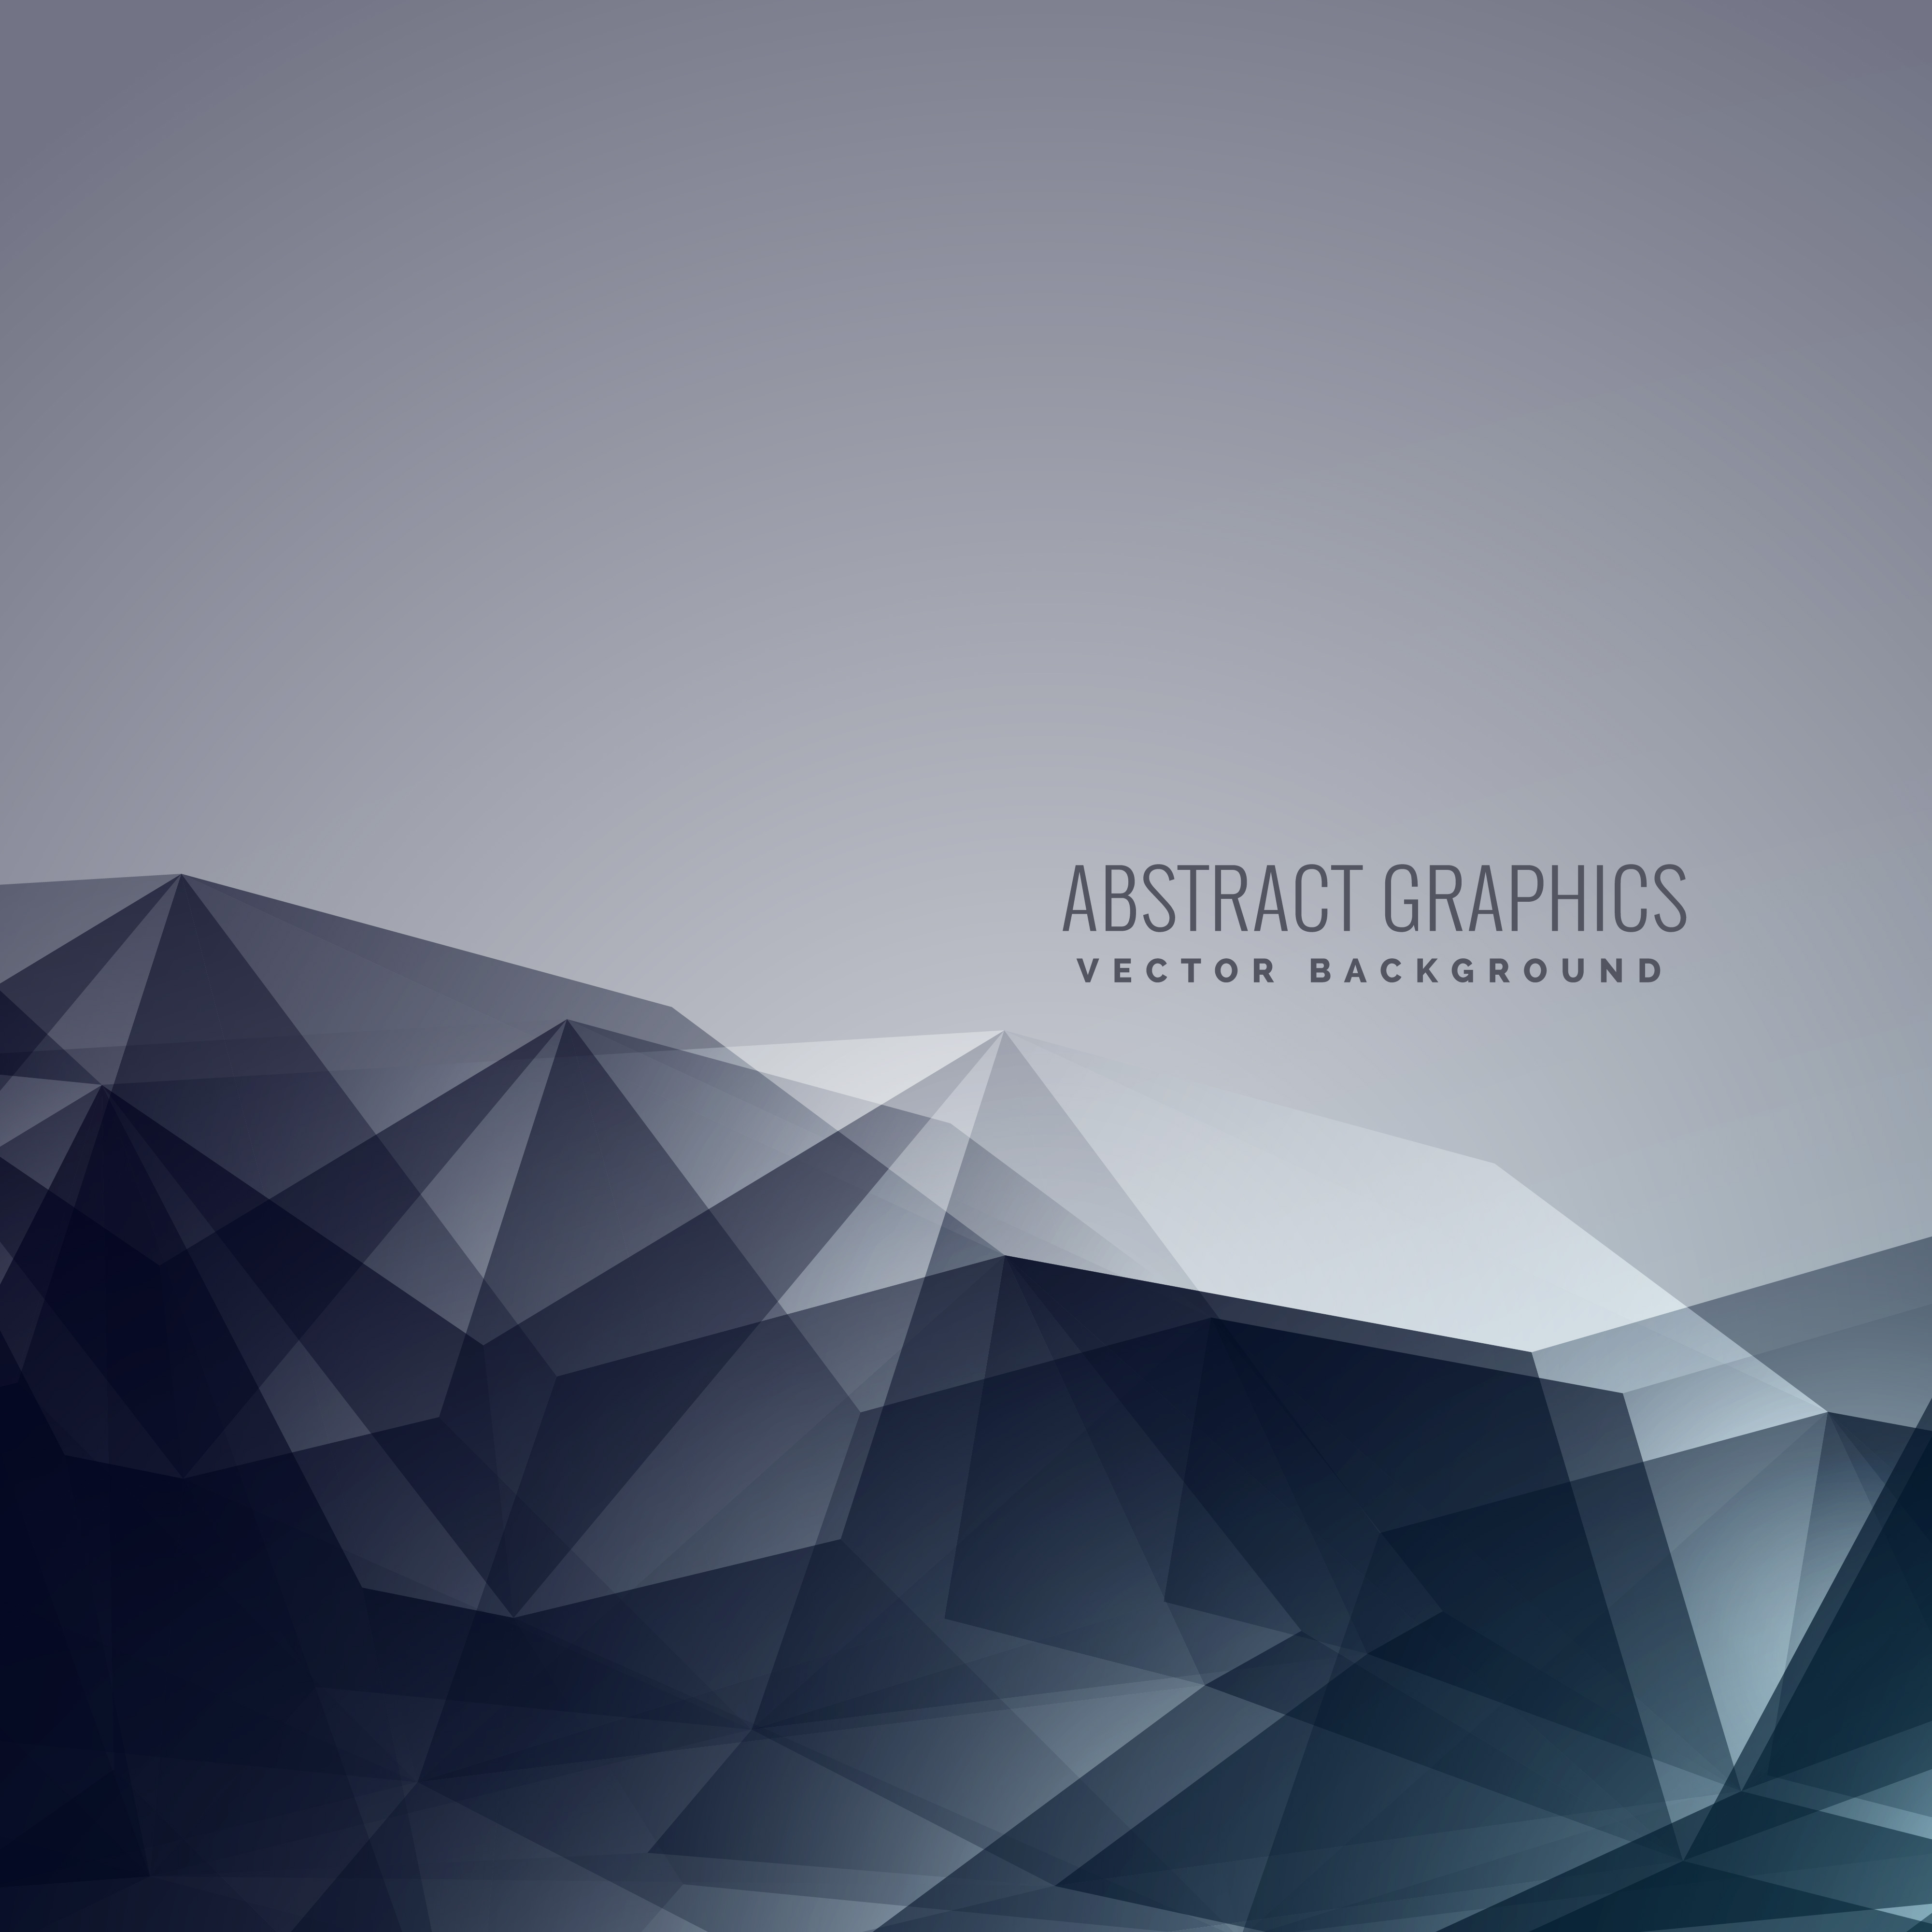 Wallpaper Black Gold 3d Abstract Low Poly Dark Background Download Free Vector